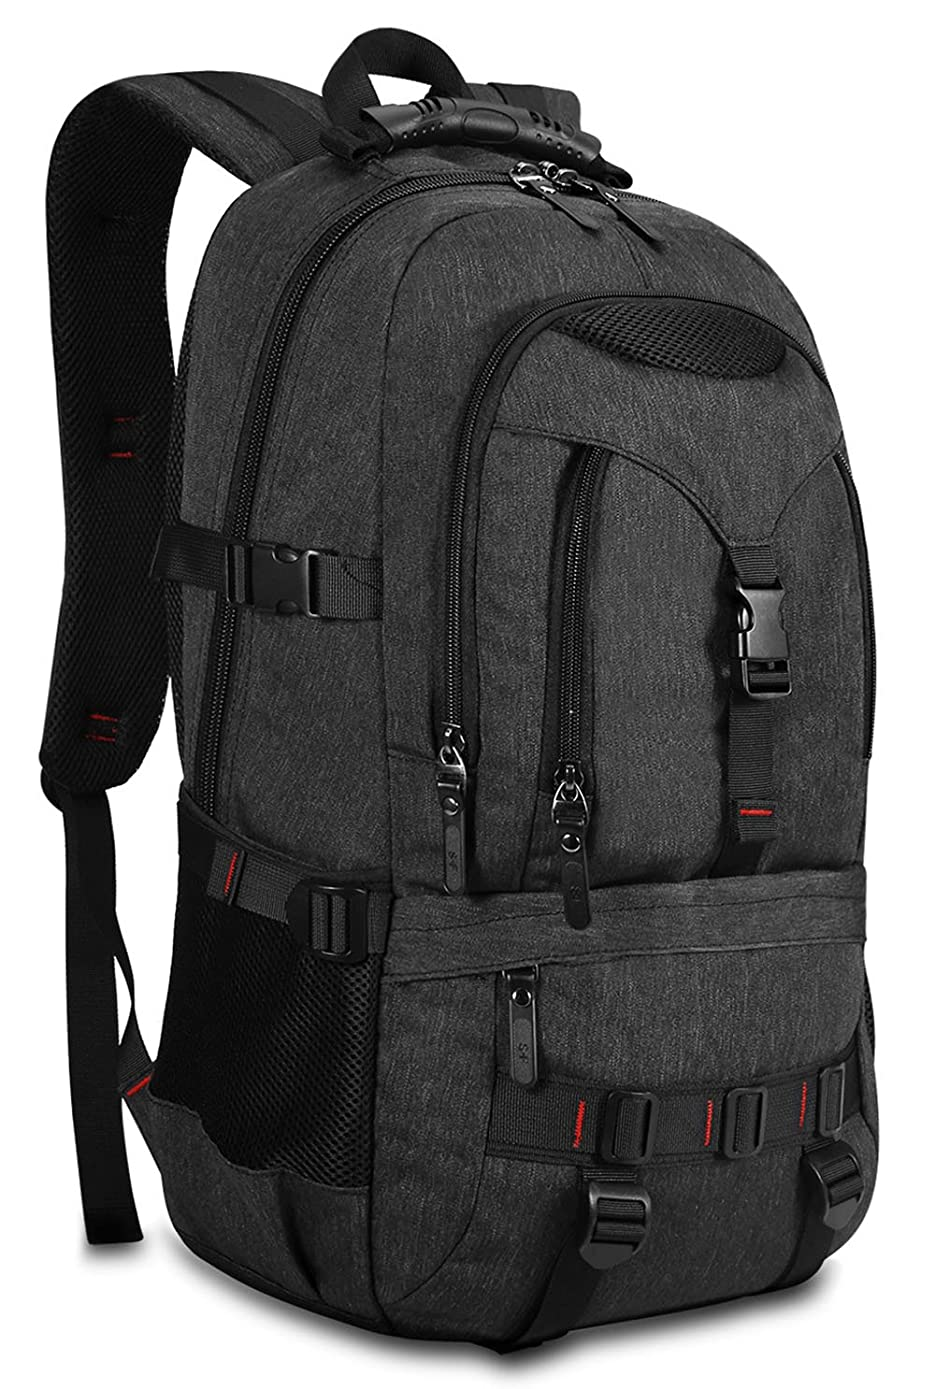 KAKA Large Laptop Backpack, Anti Theft Water Resistant Travel Backpack for Women & Men Fits 17 Inch Laptop and Notebook, Black Daypack for Outdoor Camping